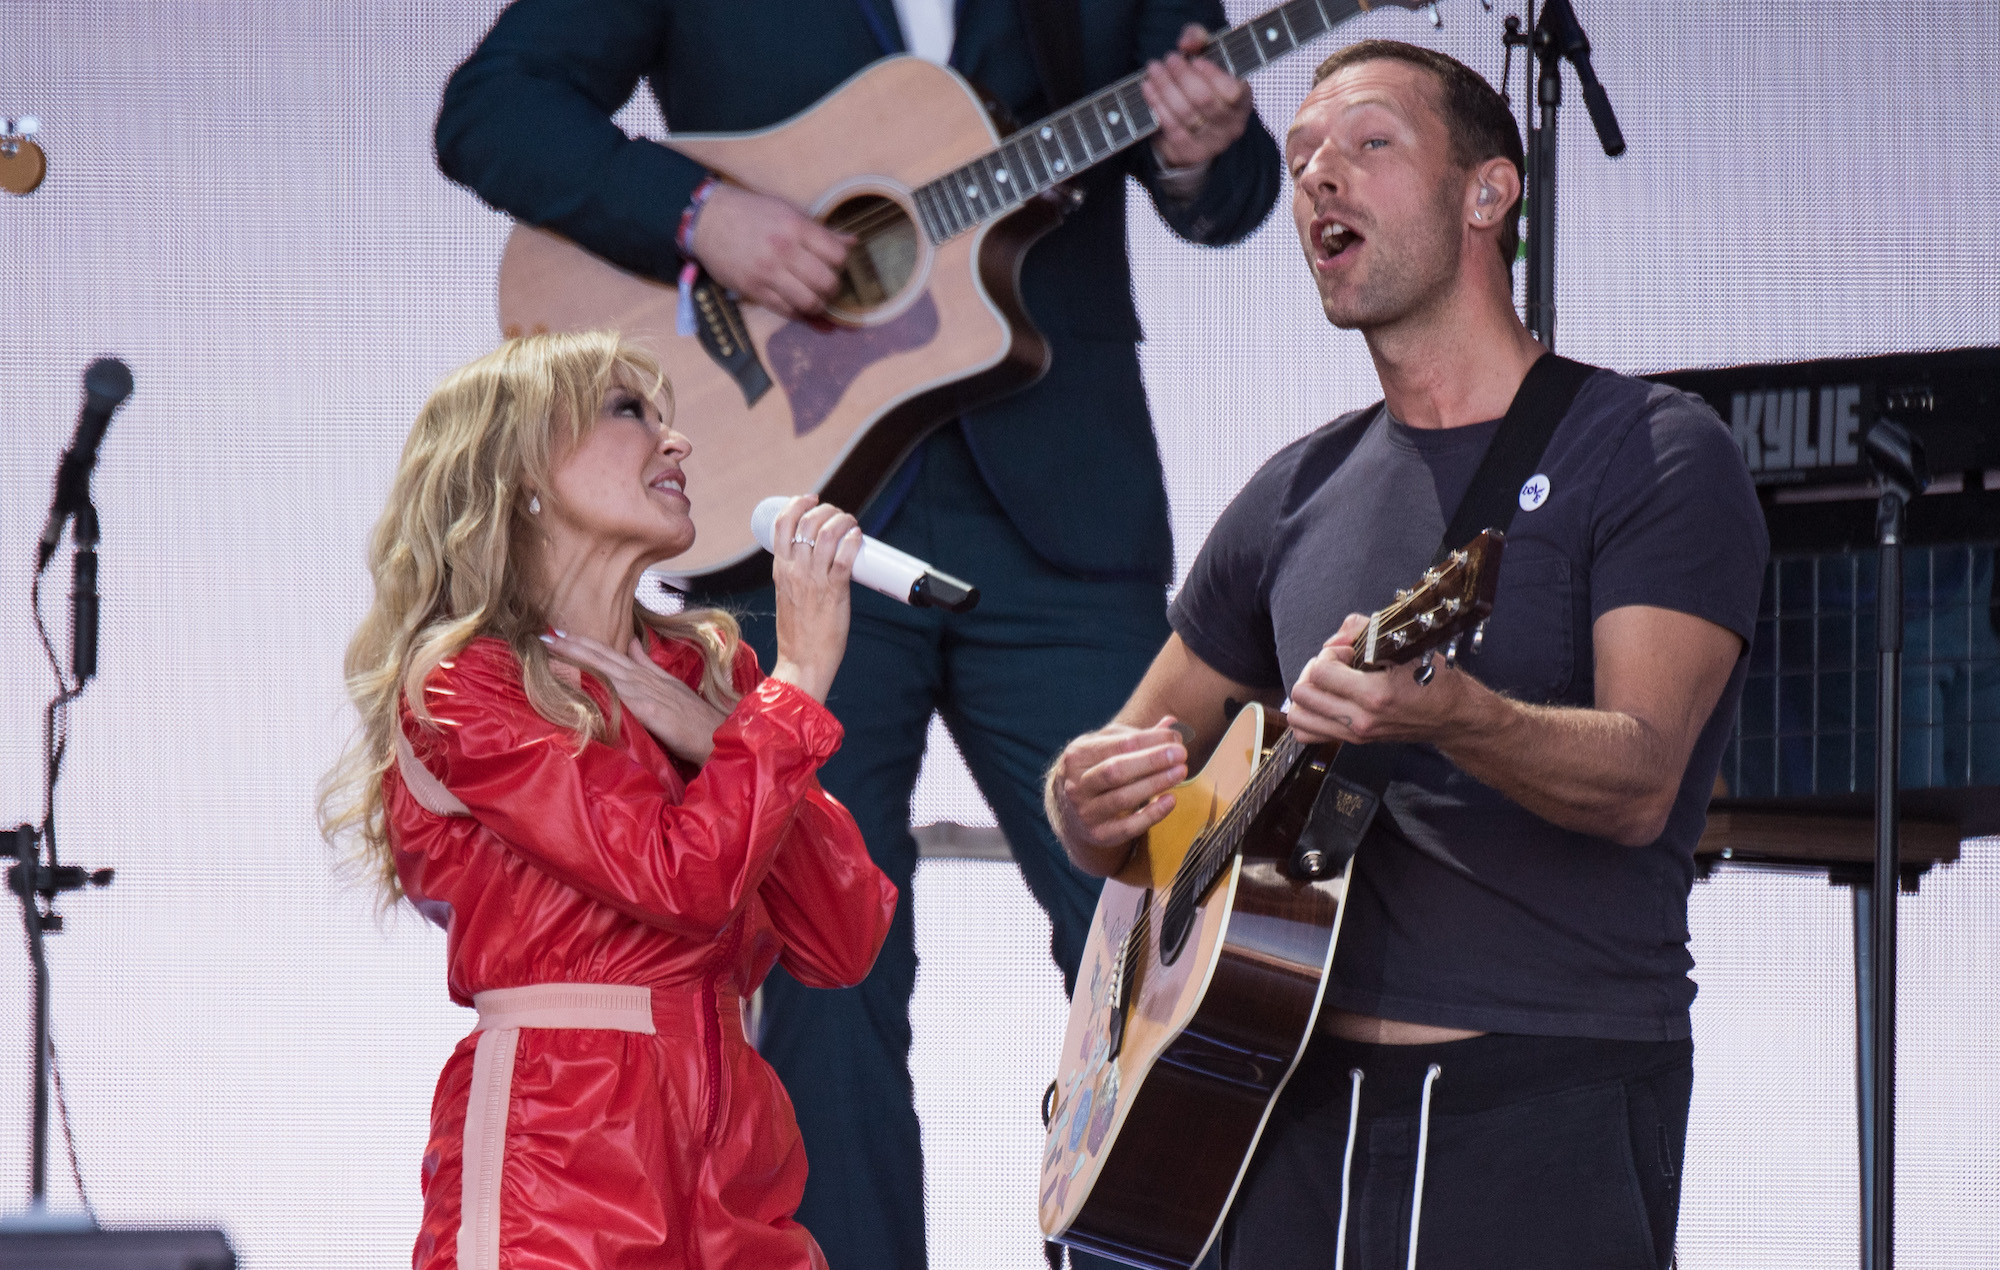 Kylie Chris Martin Glastonbury